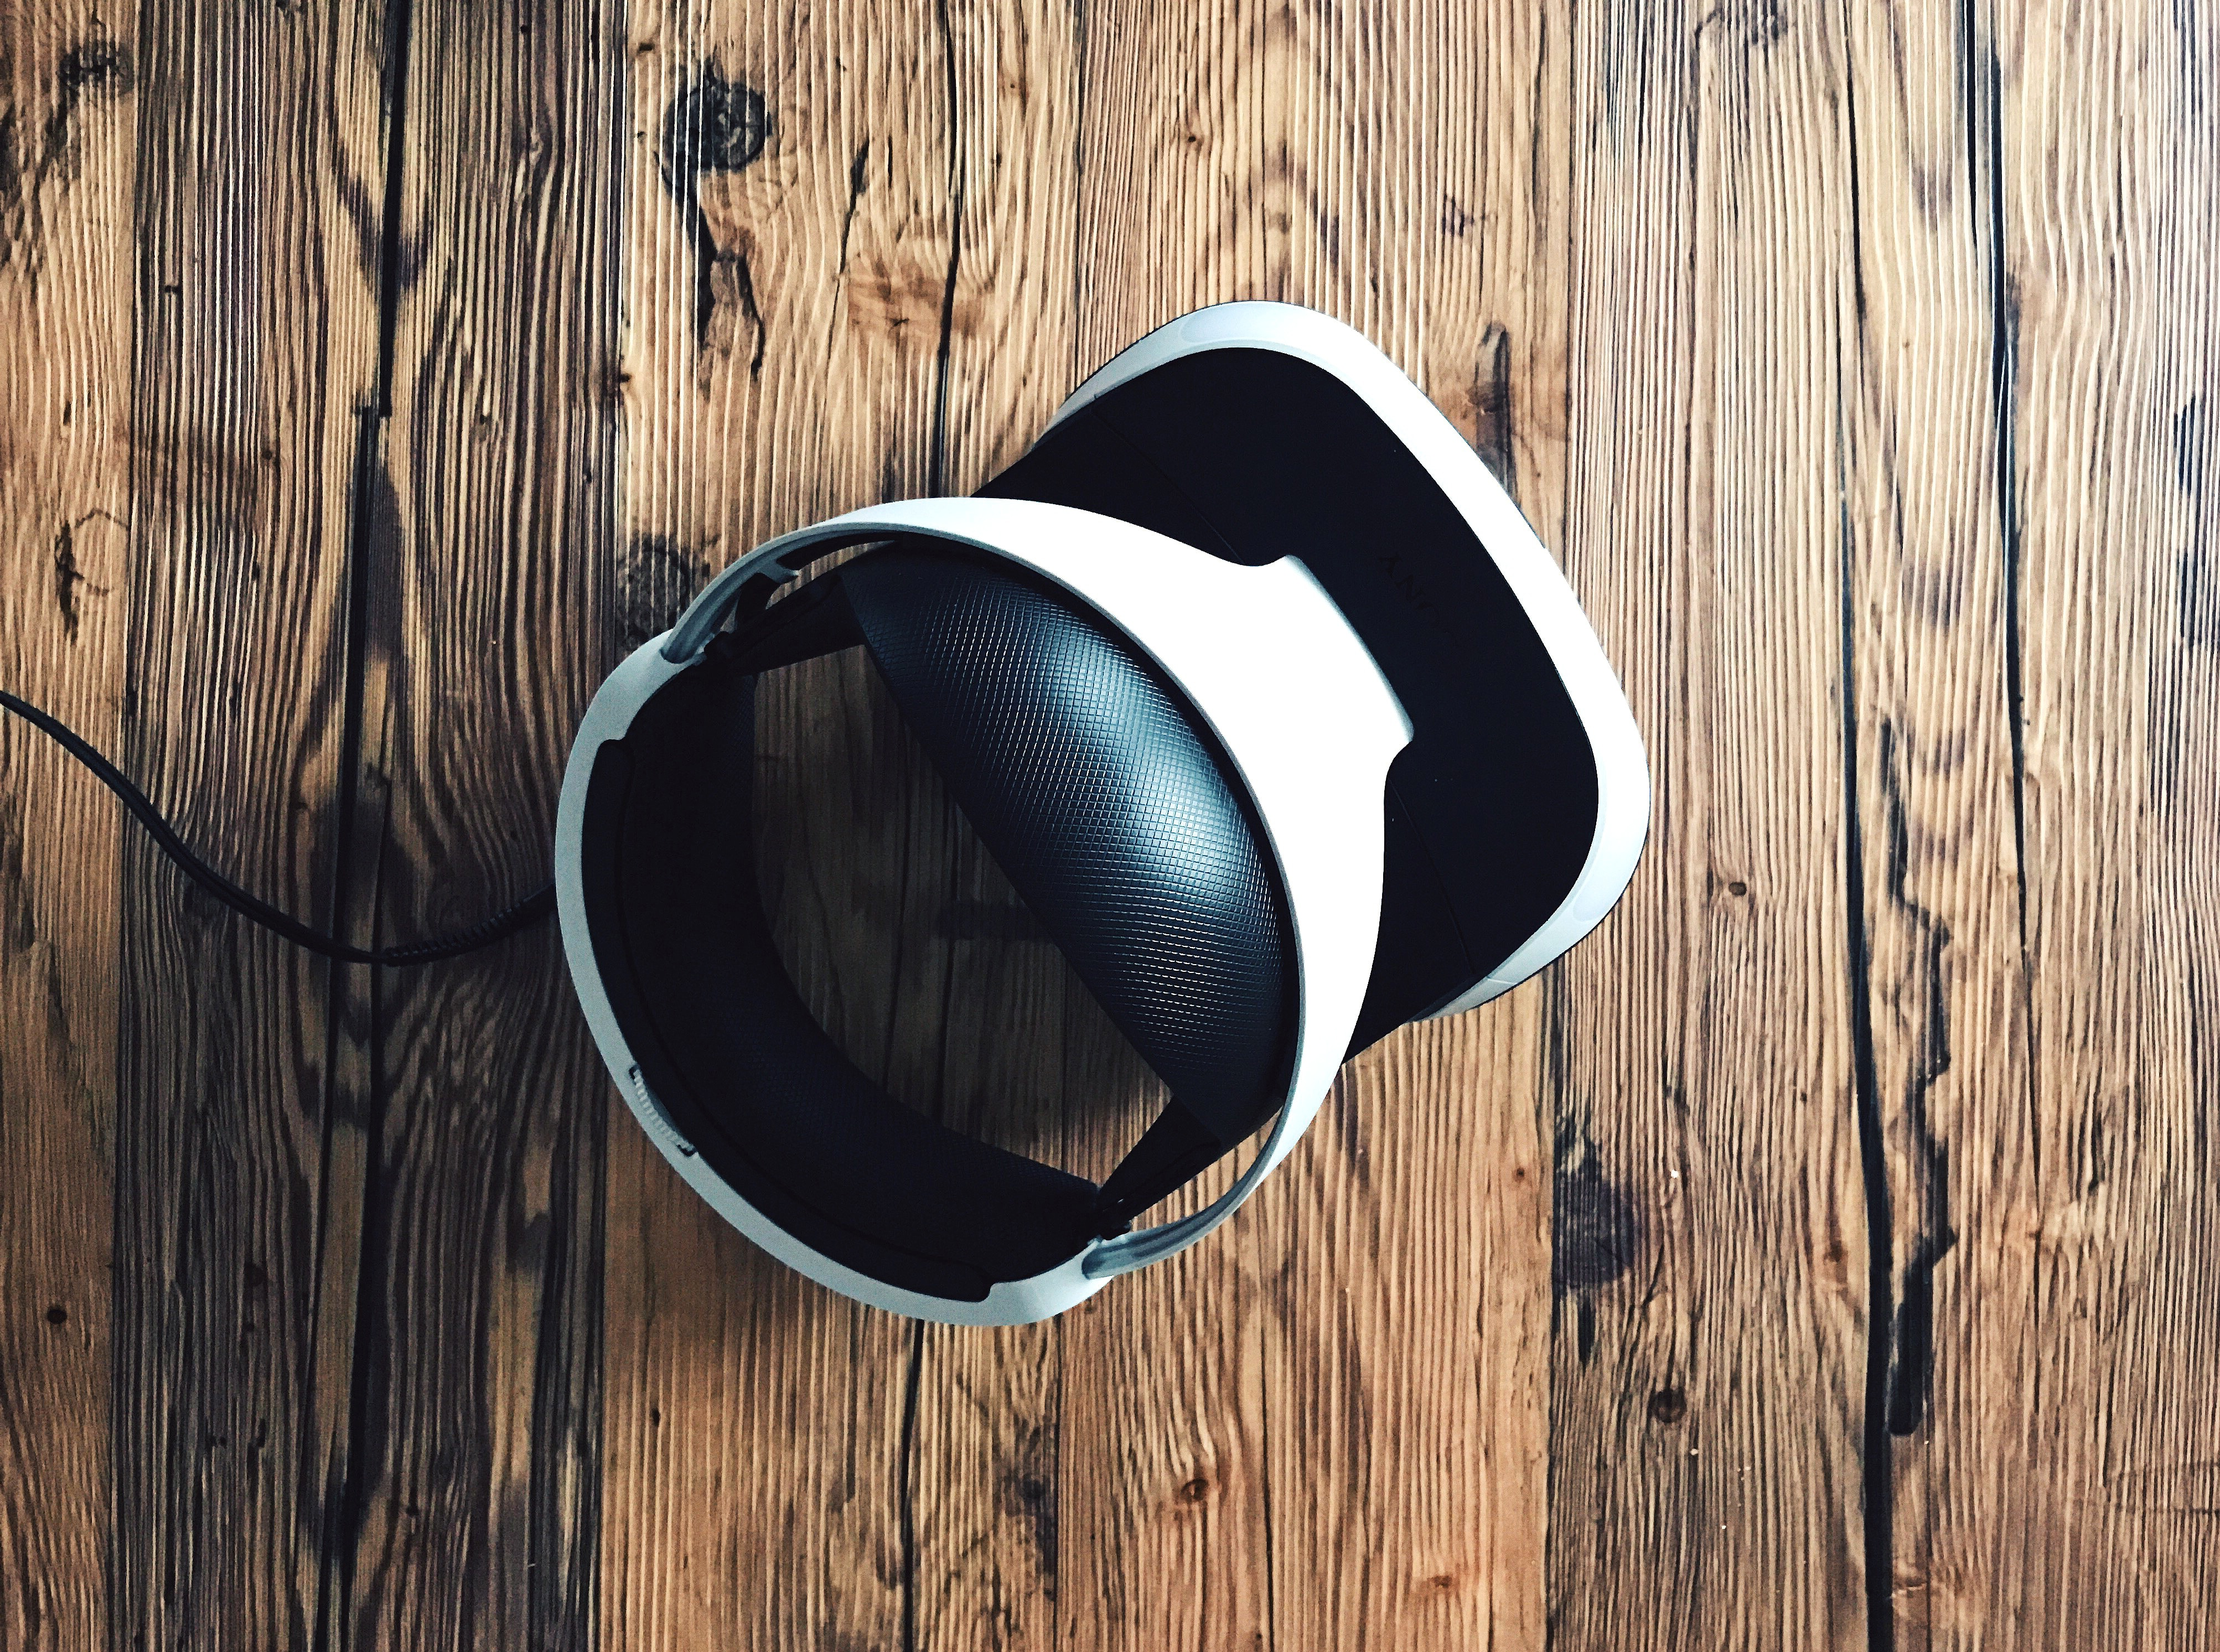 vr goggles on wooden floor